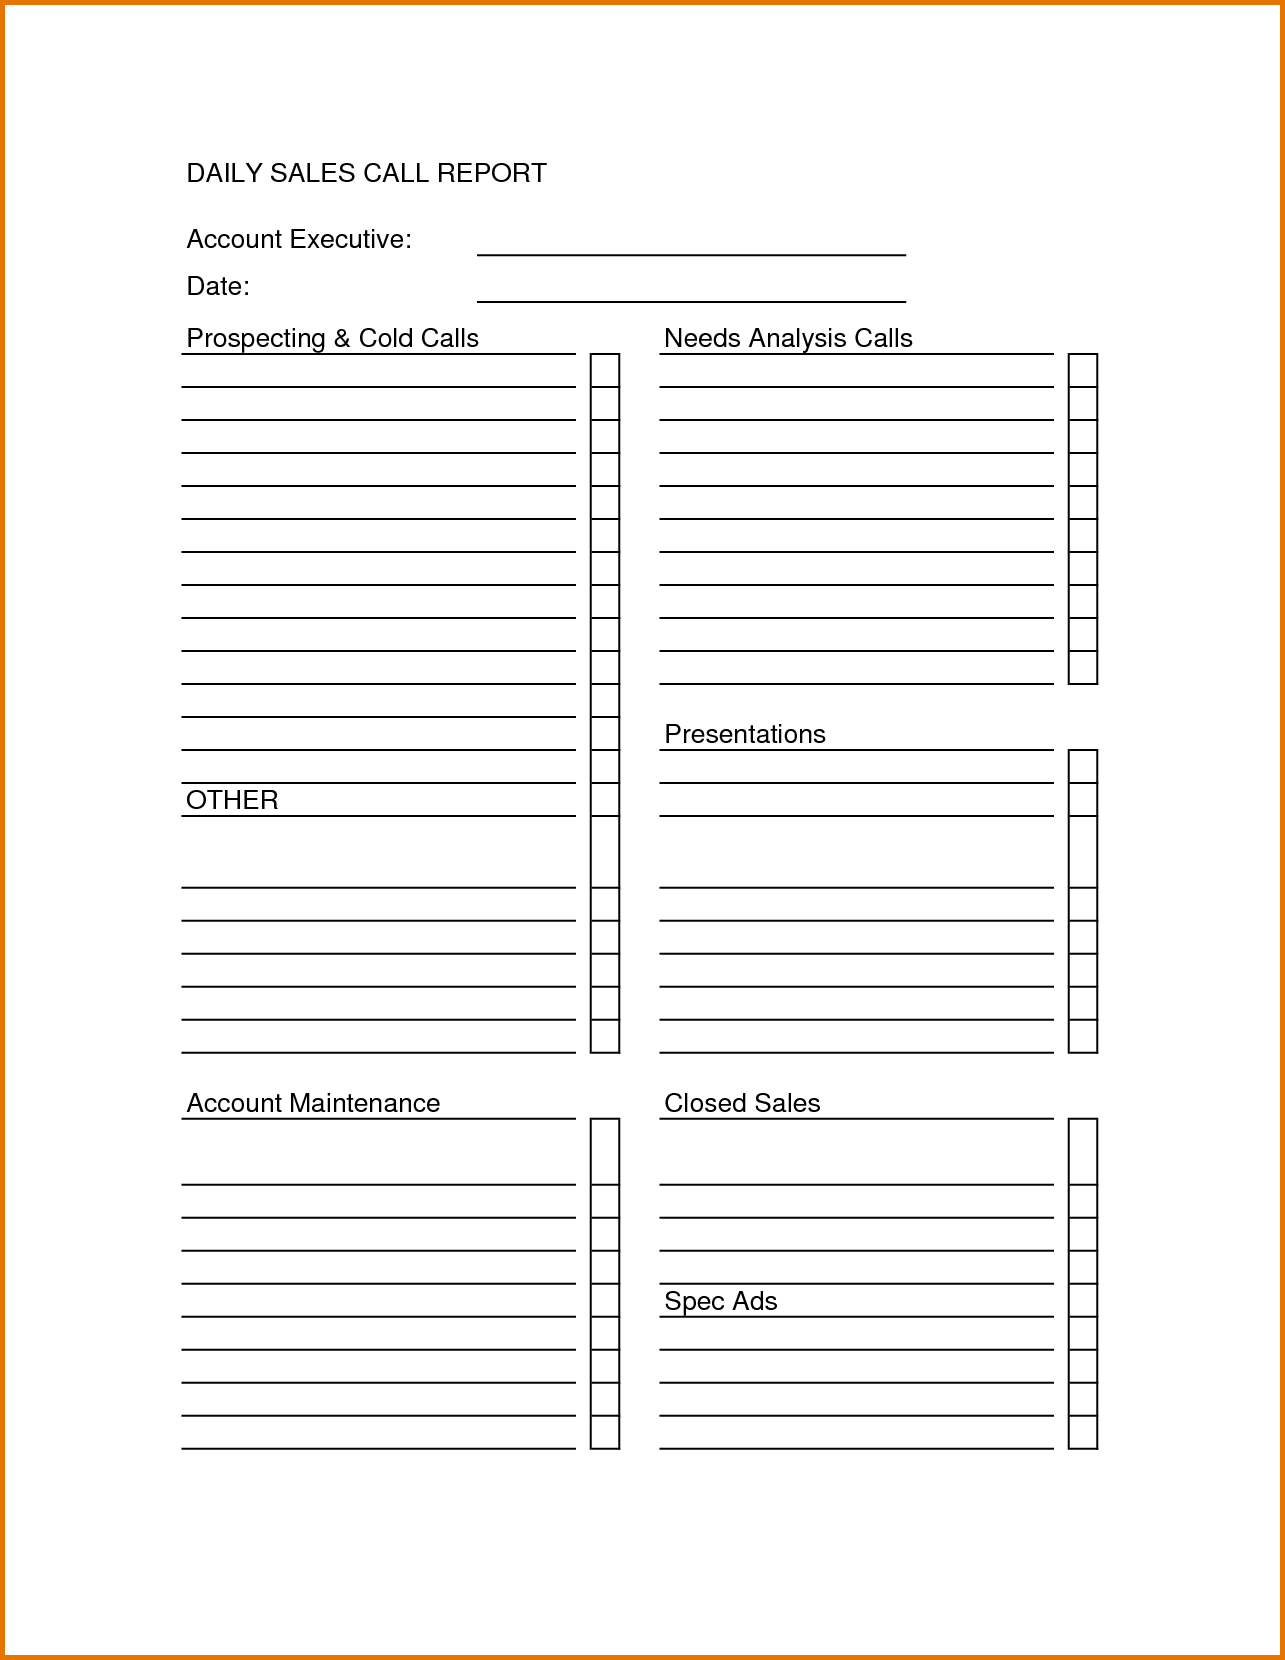 sales call sheet template sales call report sheet forms pinterest template and free printables. Black Bedroom Furniture Sets. Home Design Ideas